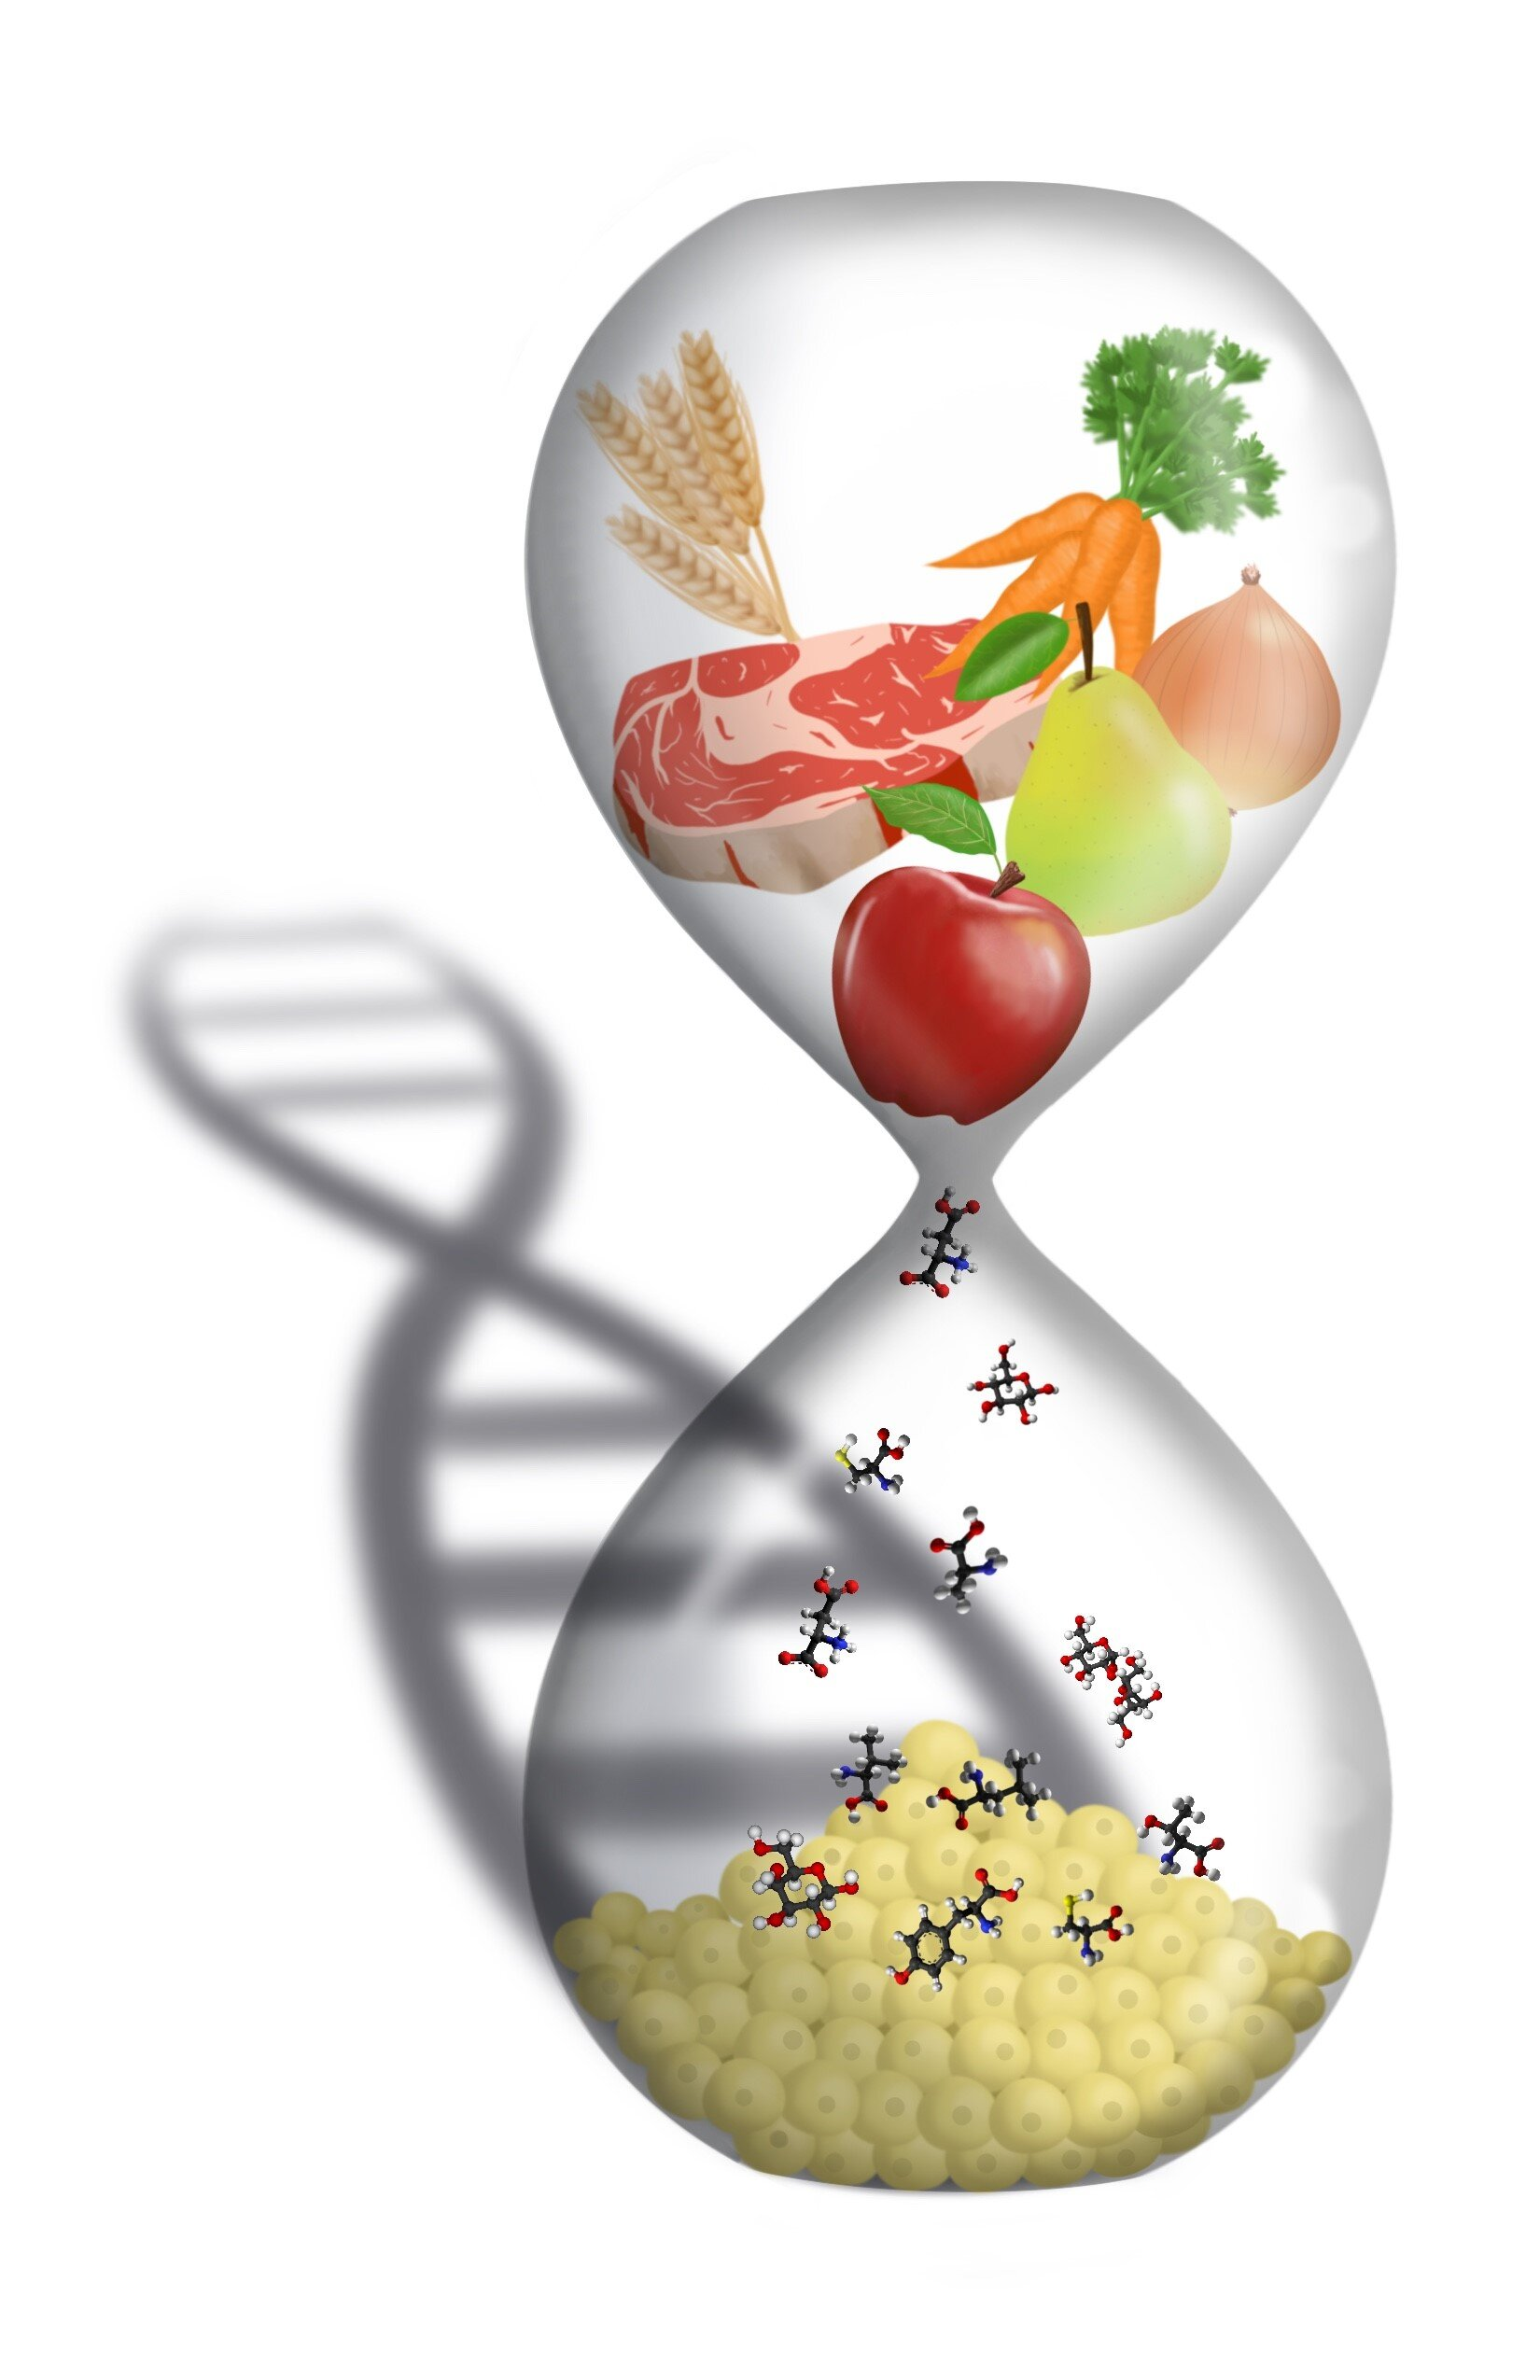 Study: Intermittent fasting 'no magic bullet for weight loss'